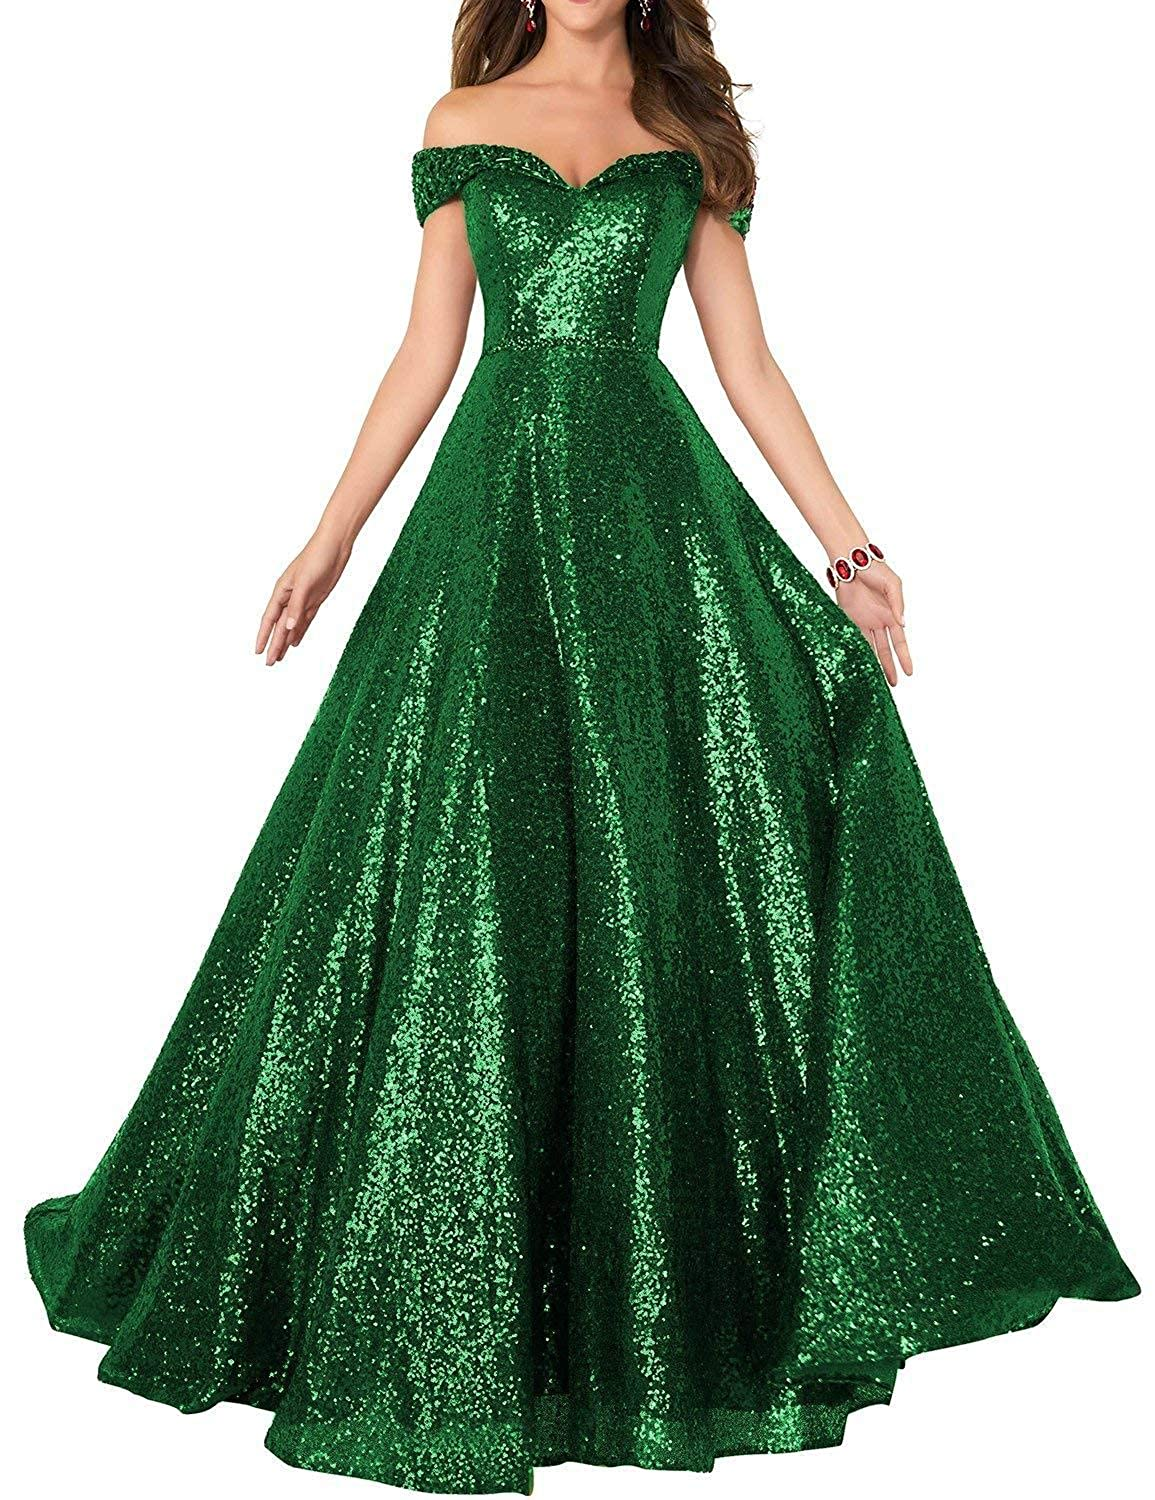 Green Vimans Womens Long Sequined Prom Dresses 2018 Off Shoulder Evening Gown P199